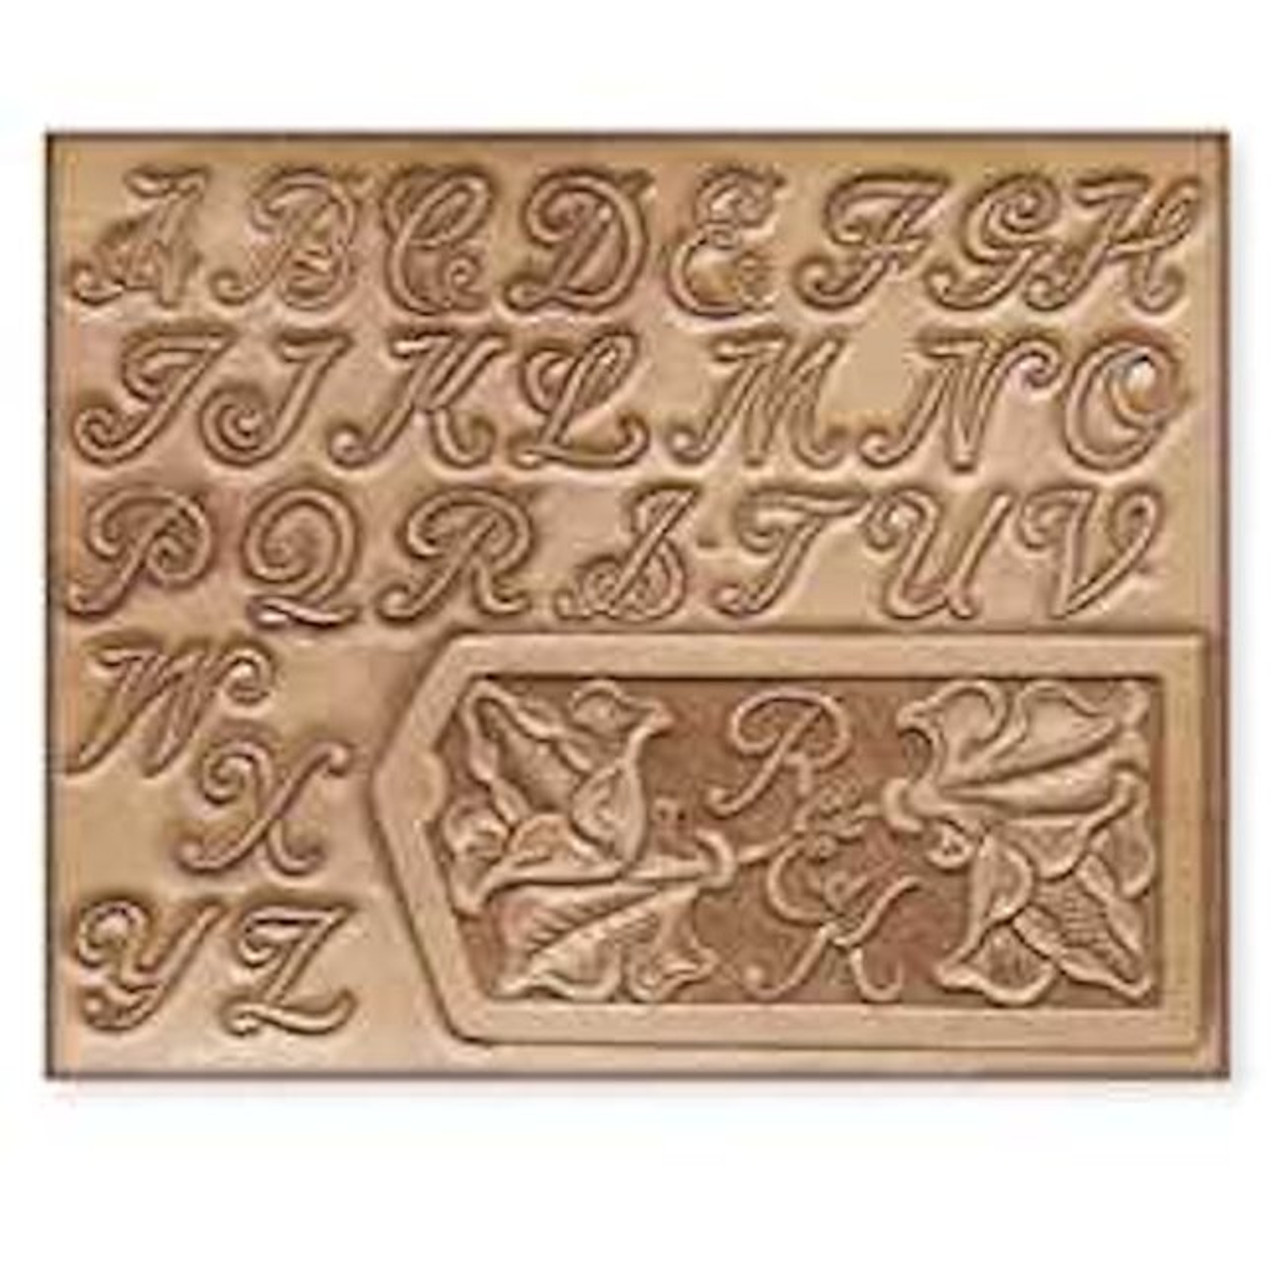 Tandy Leather Craftool Figure Carving Stamp F898 6898